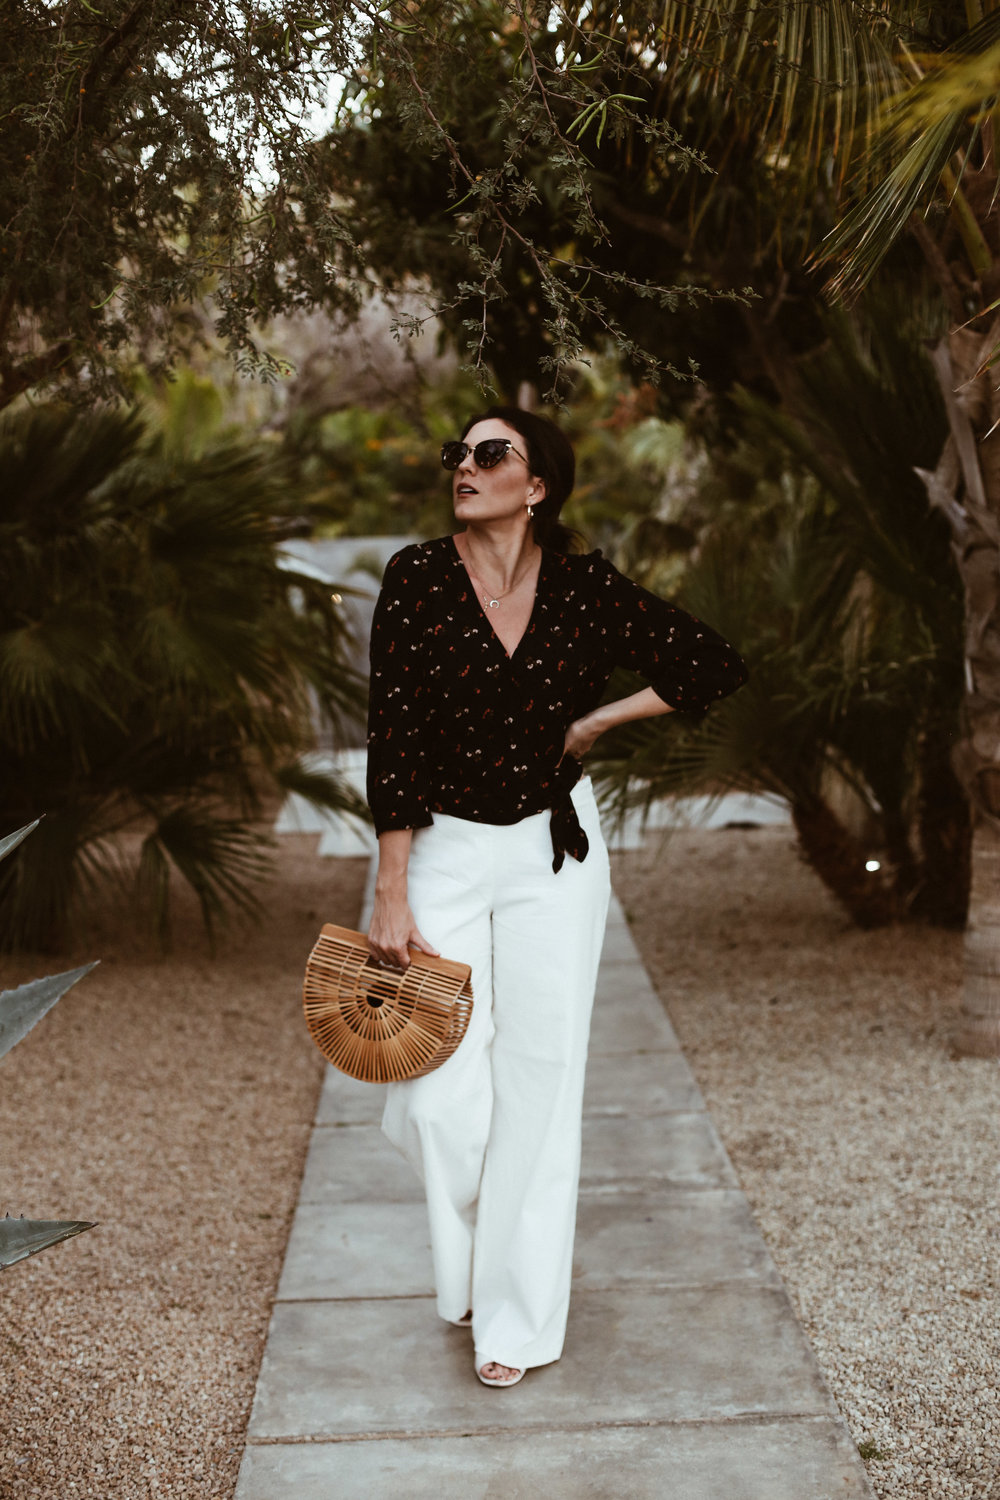 WHAT I'M WEARING - GLANCE EYEWEAR SUNNIES (via Nordstrom)H&M EARRINGS (similar)MADEWELL TOPMAX STUDIO PANTS (similar)NINE WEST SHOESCULT GAIA BAG